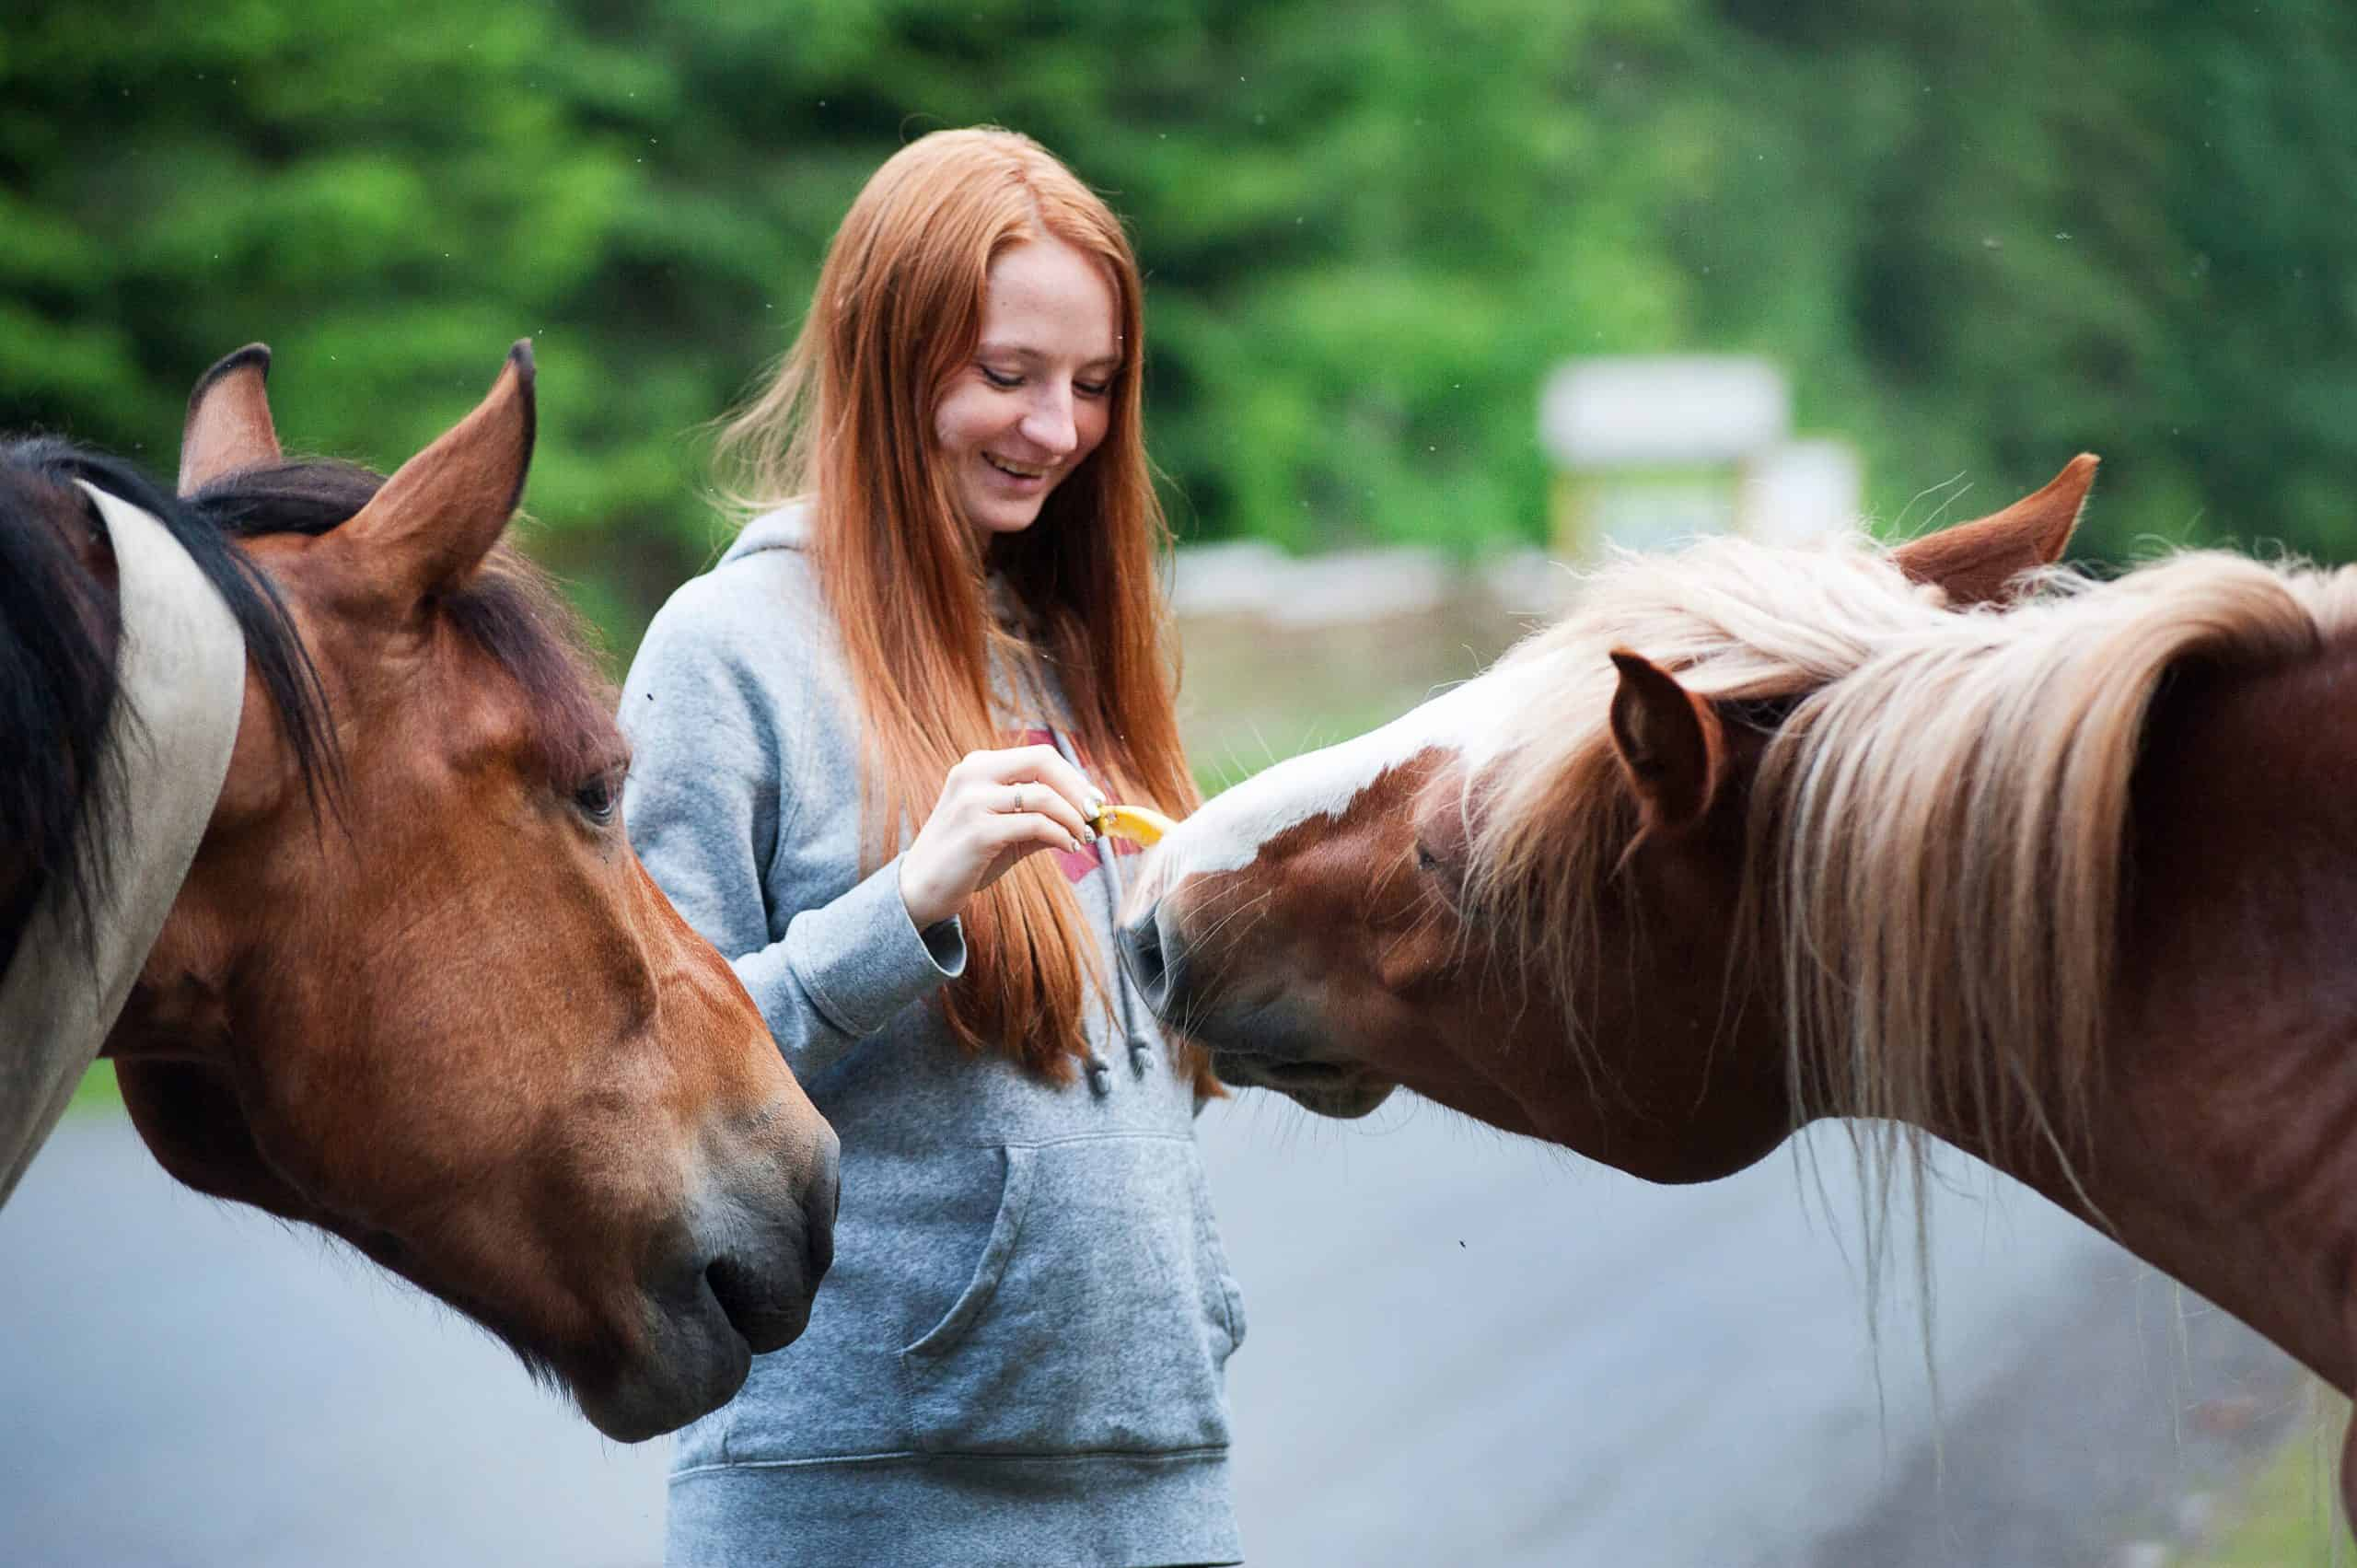 Canva - Close-Up Photography of Woman Near Horses (1)